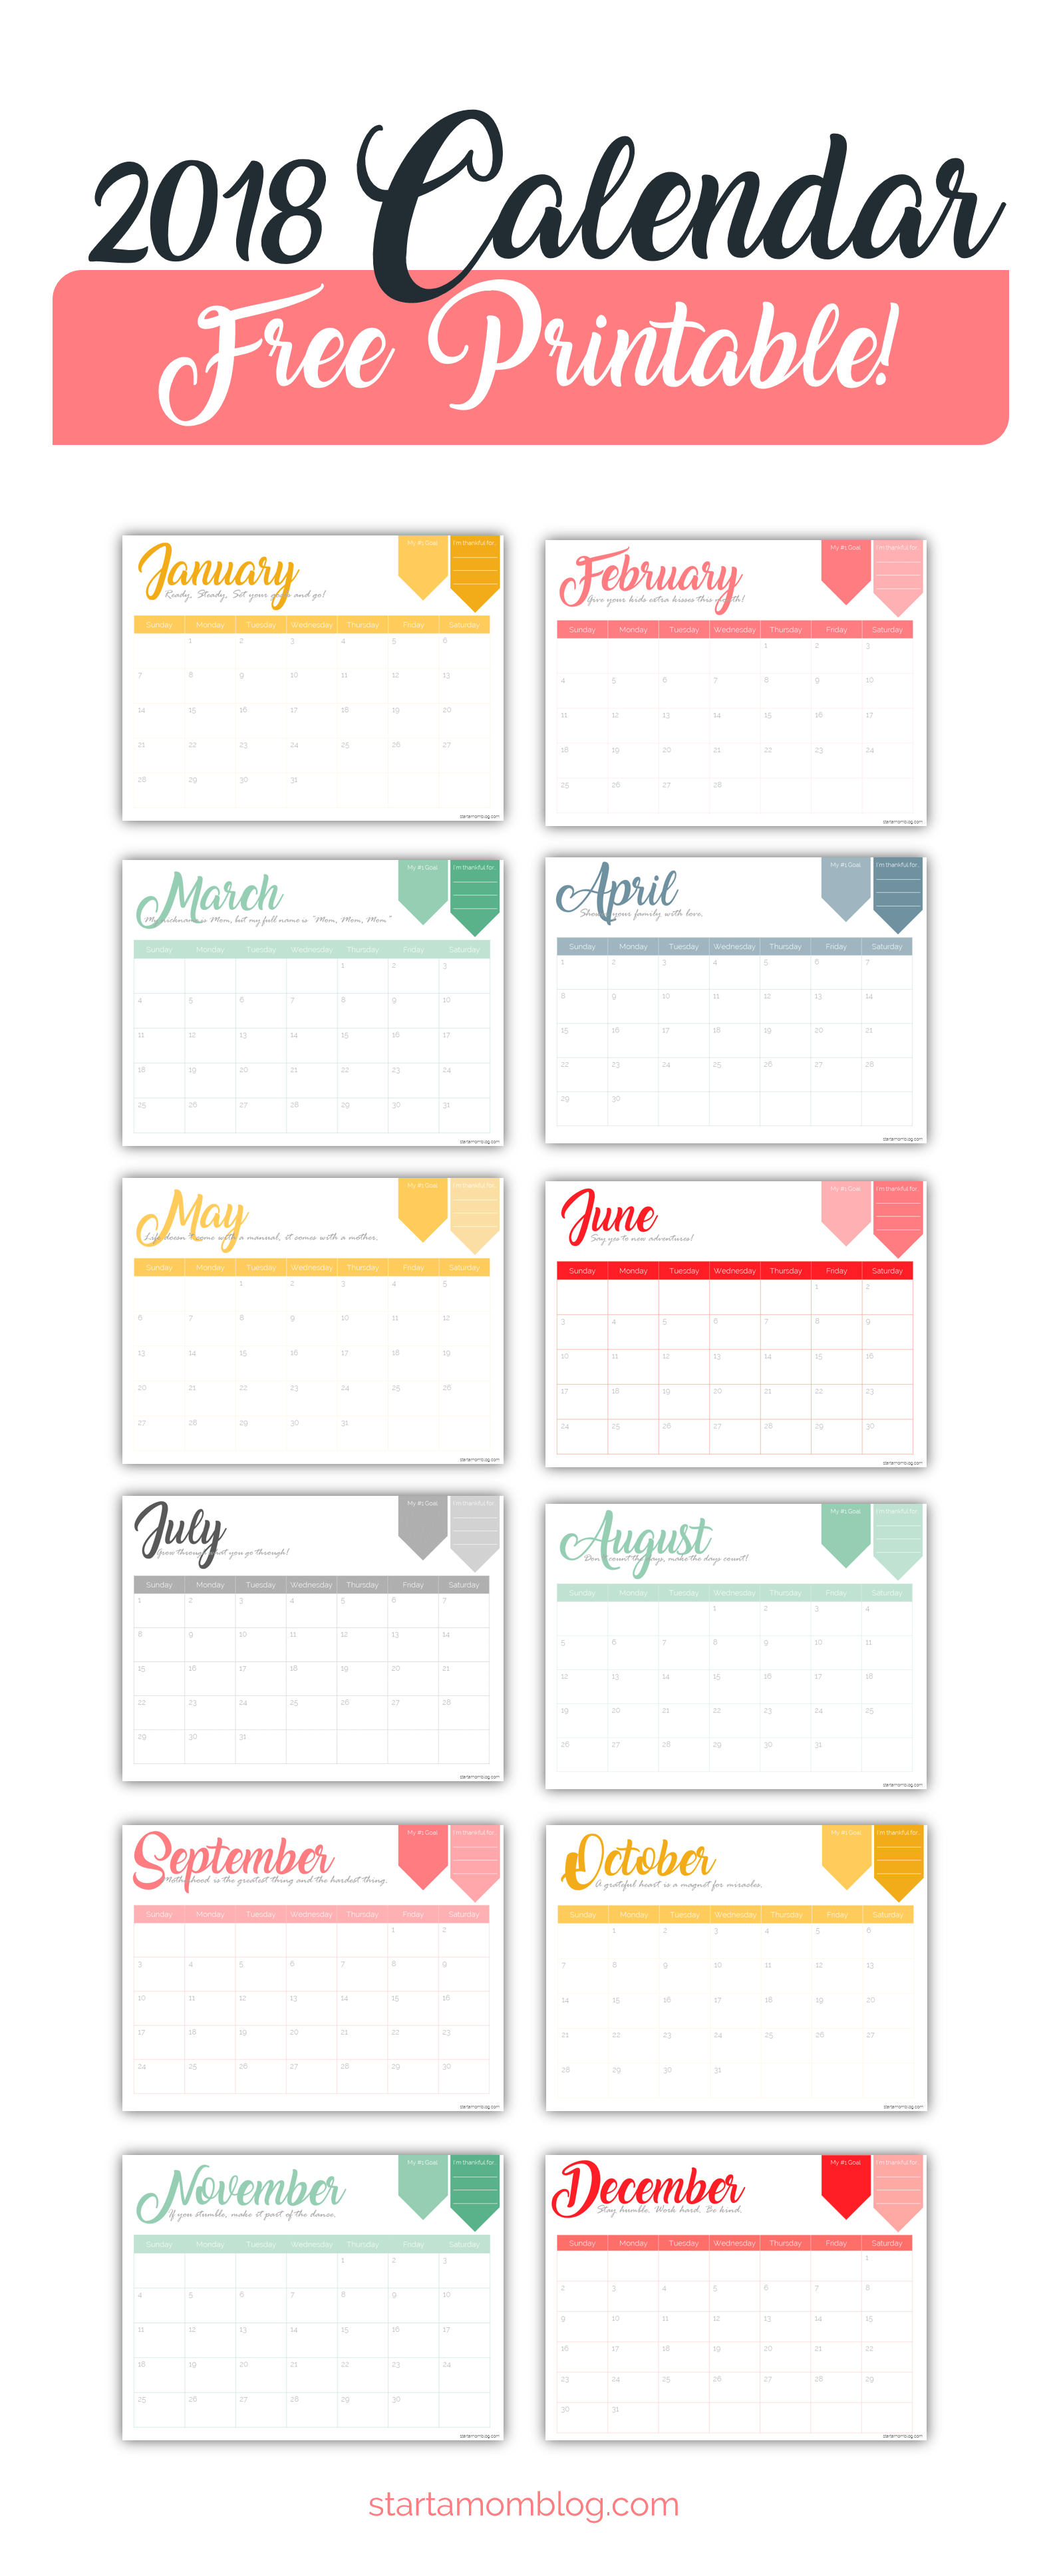 2018 Calendar Template Free Printable Start A Mom Blog Design